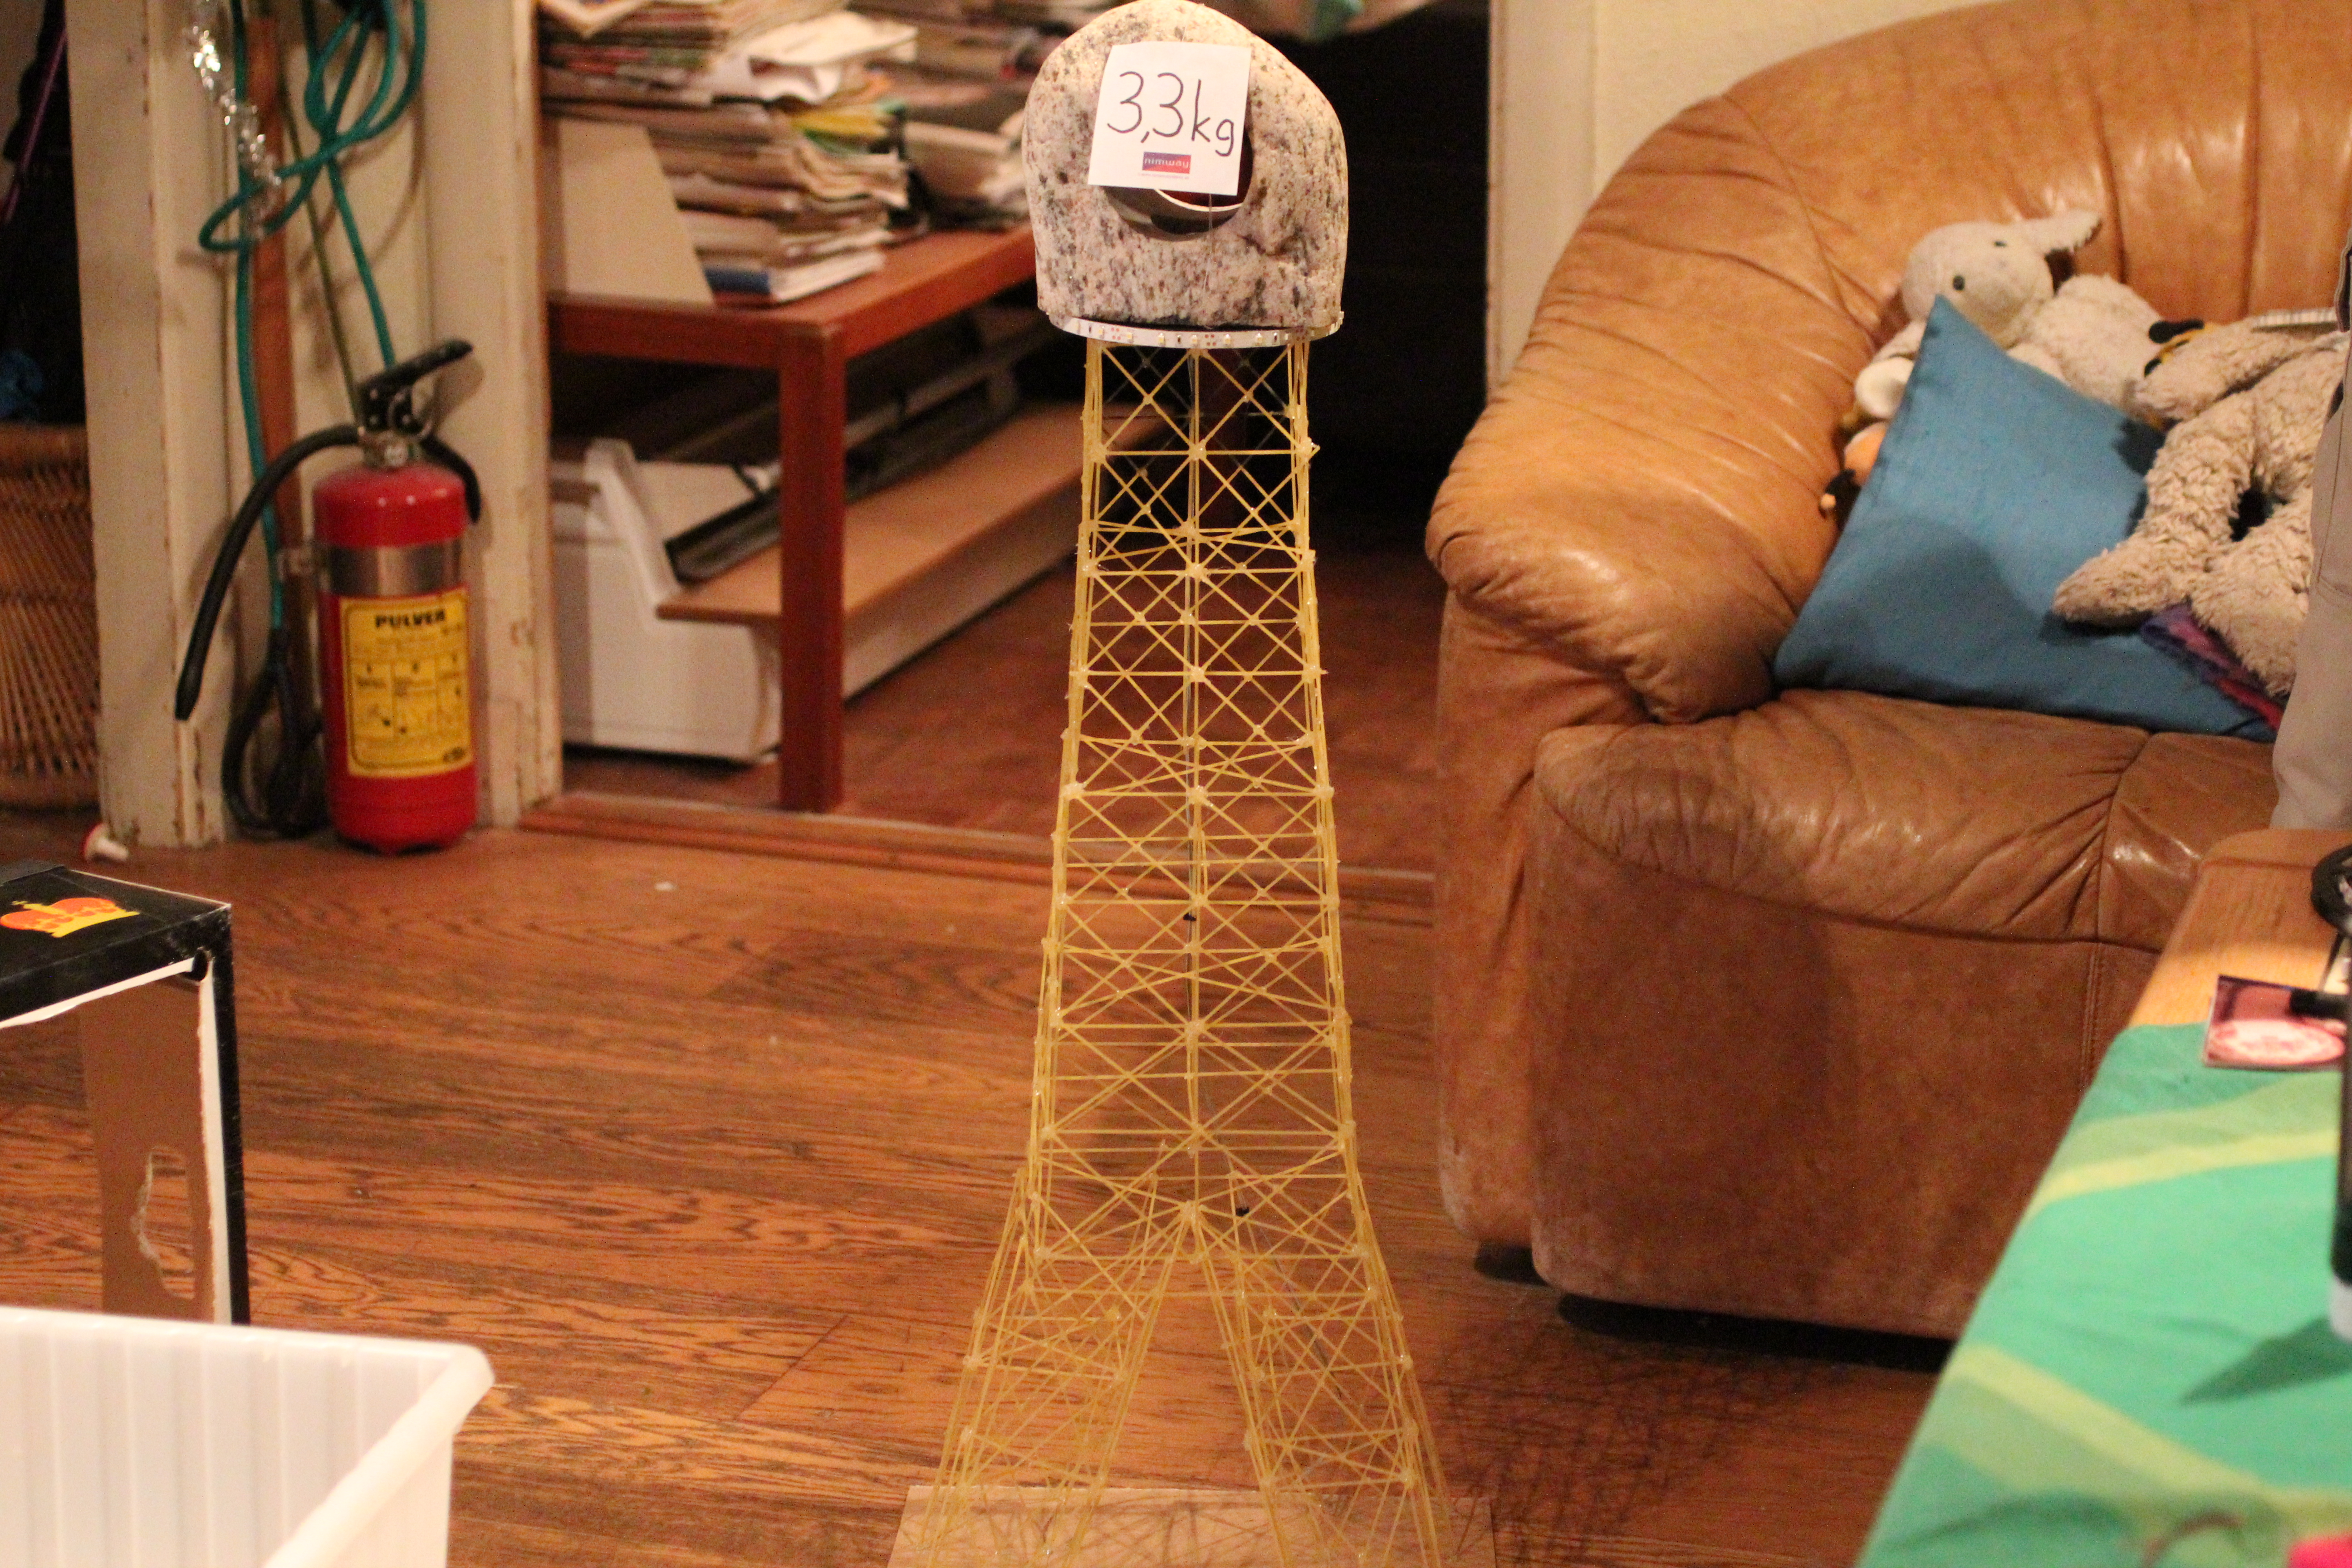 how to build a tower out of spaghetti and marshmallows